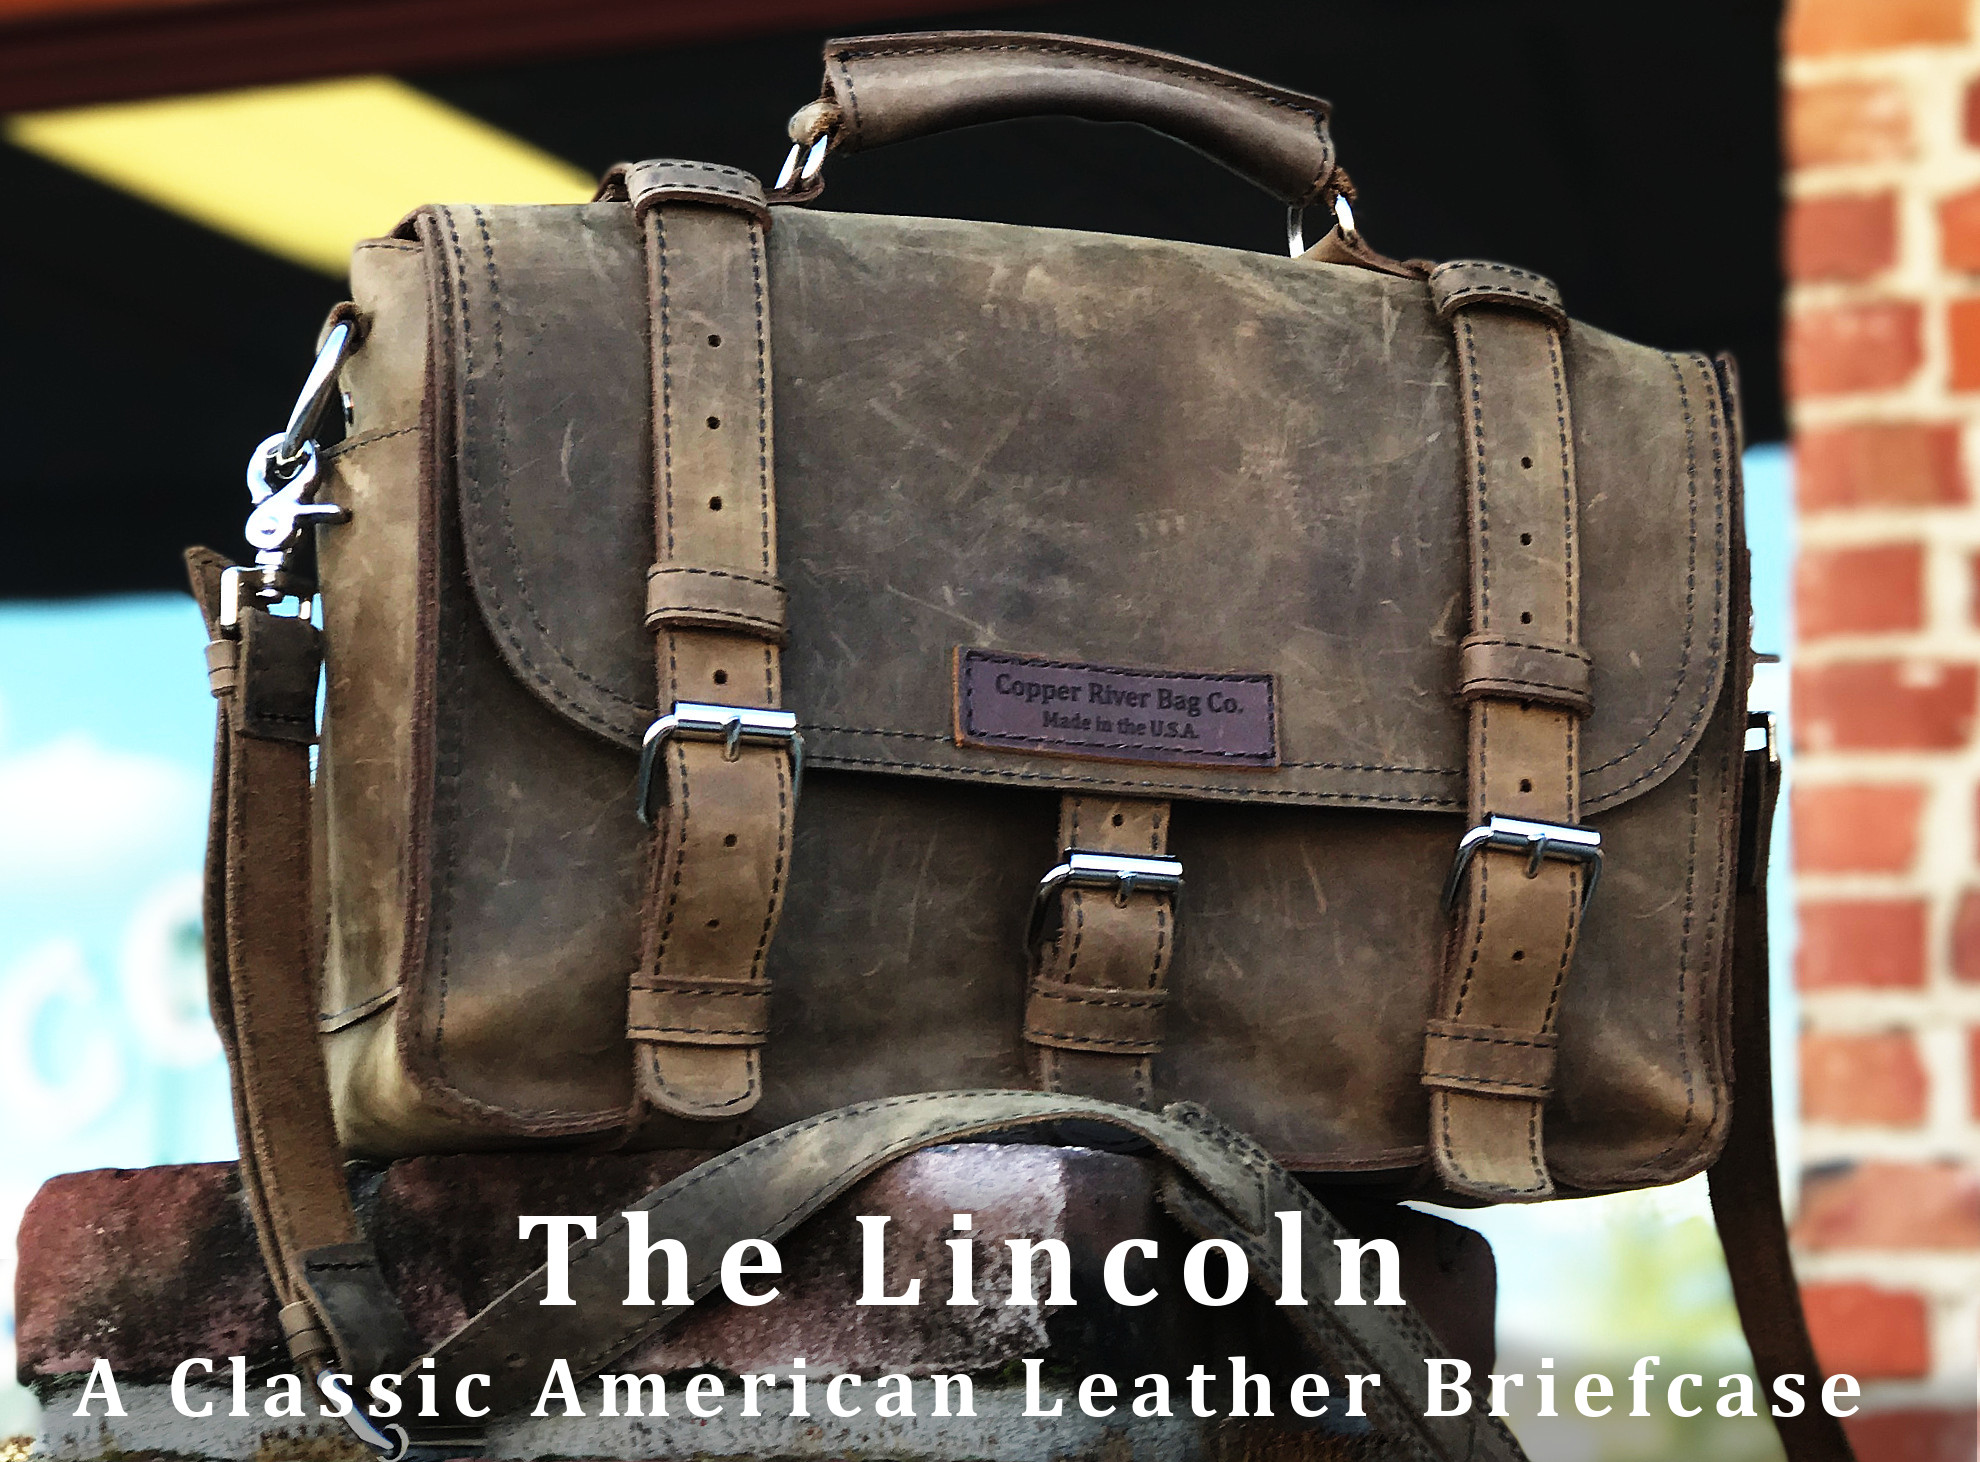 copper-river-bag-co-lincoln-classic-65.jpg